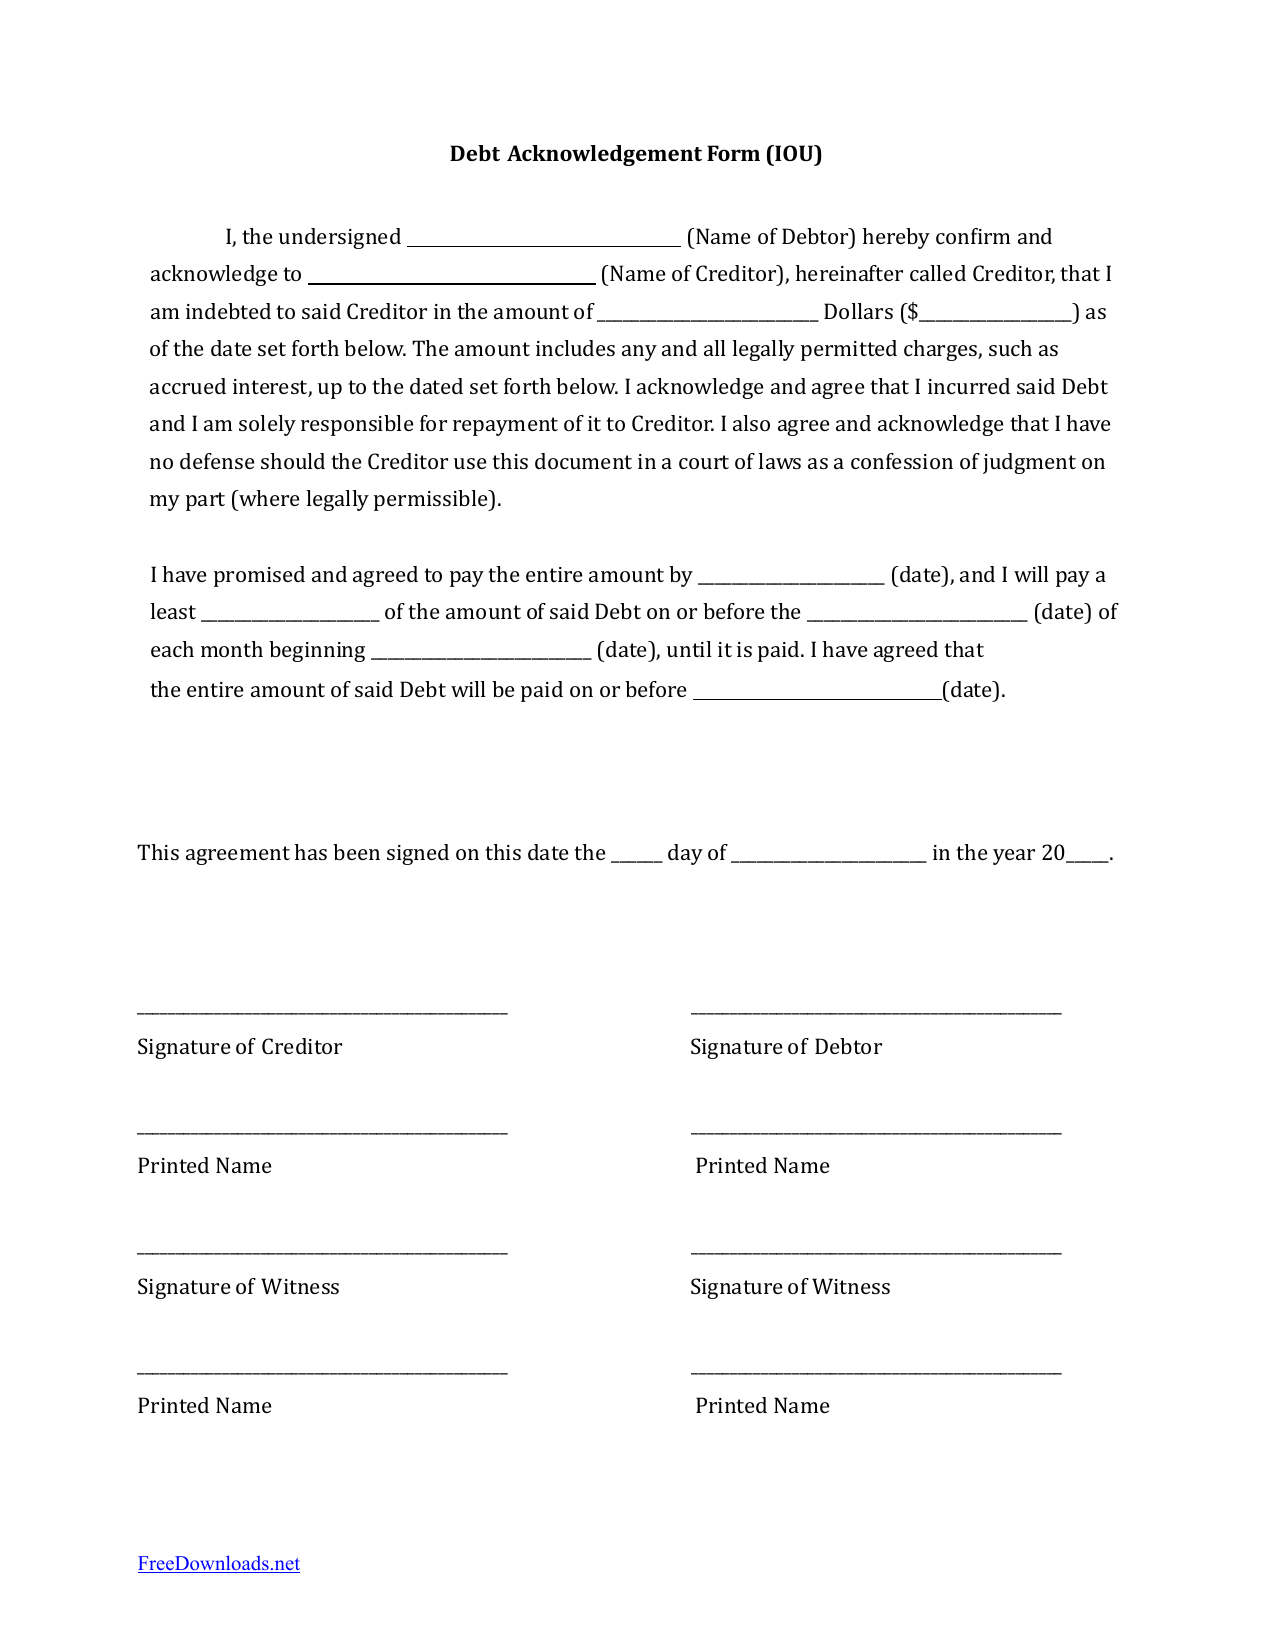 Download Iou (I Owe You) Debt Acknowledgment Form | Pdf | Rtf | Word - Free Printable Legal Documents Forms